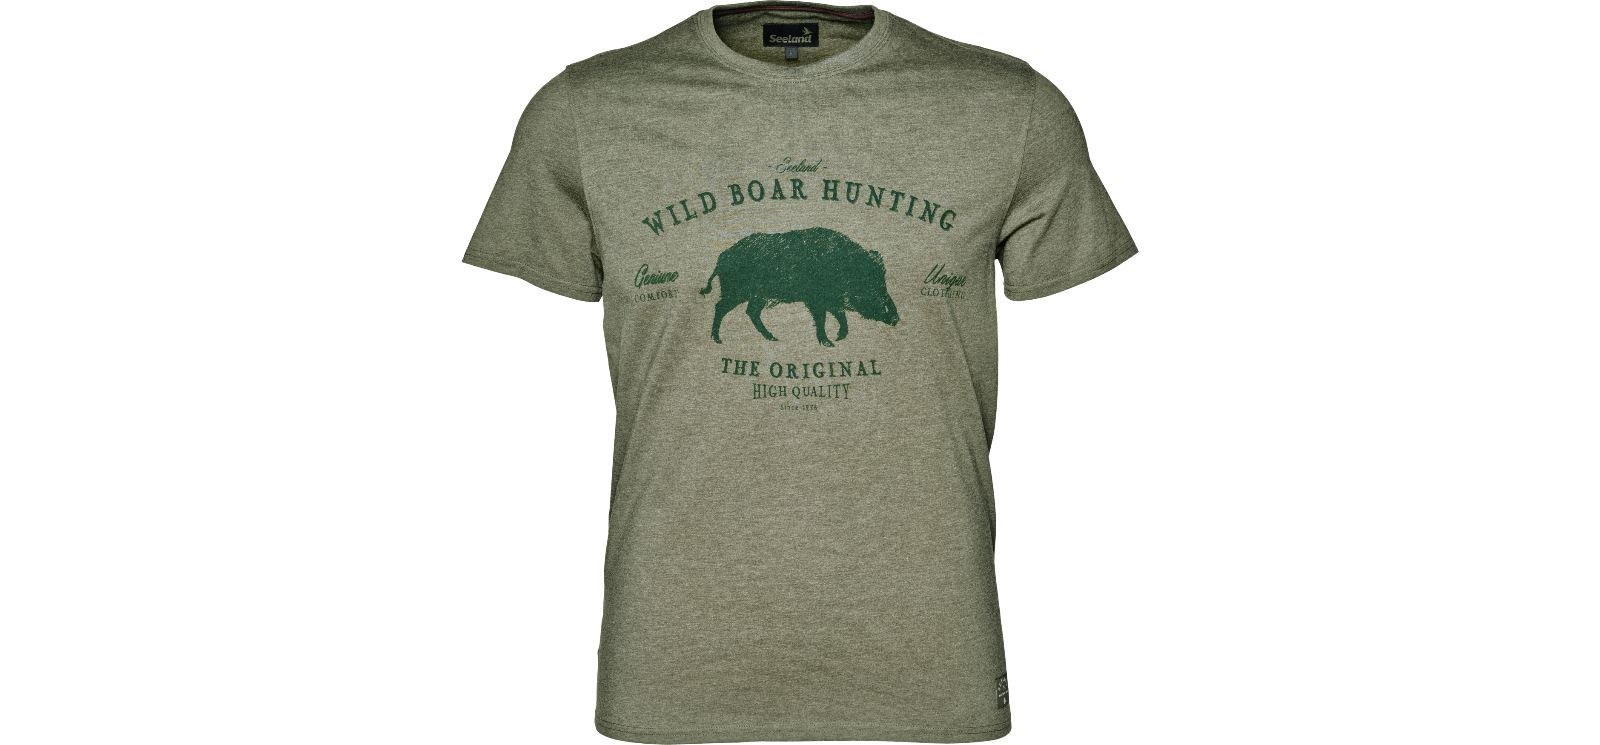 Seeland Aiden Printed T-Shirt - Duffel Green Melange - reid outdoors